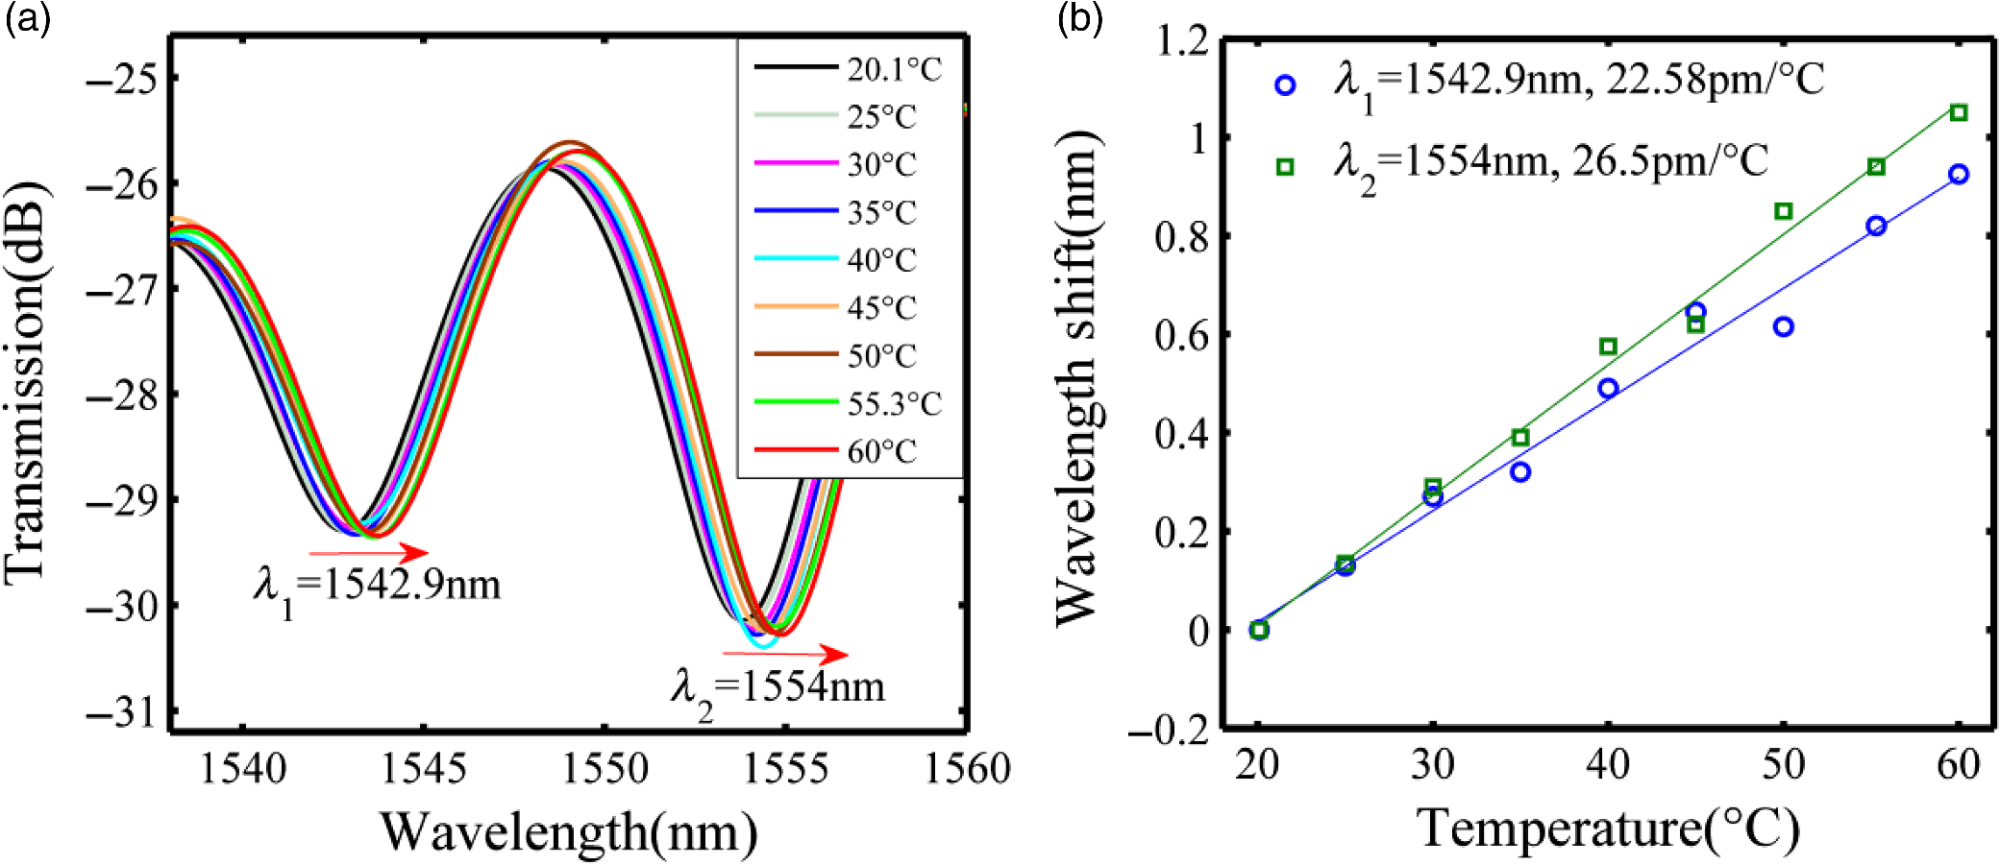 hight resolution of  a transmission spectra in response to different temperature and b linear fitting results at dip1 dip 1 and dip2 dip 2